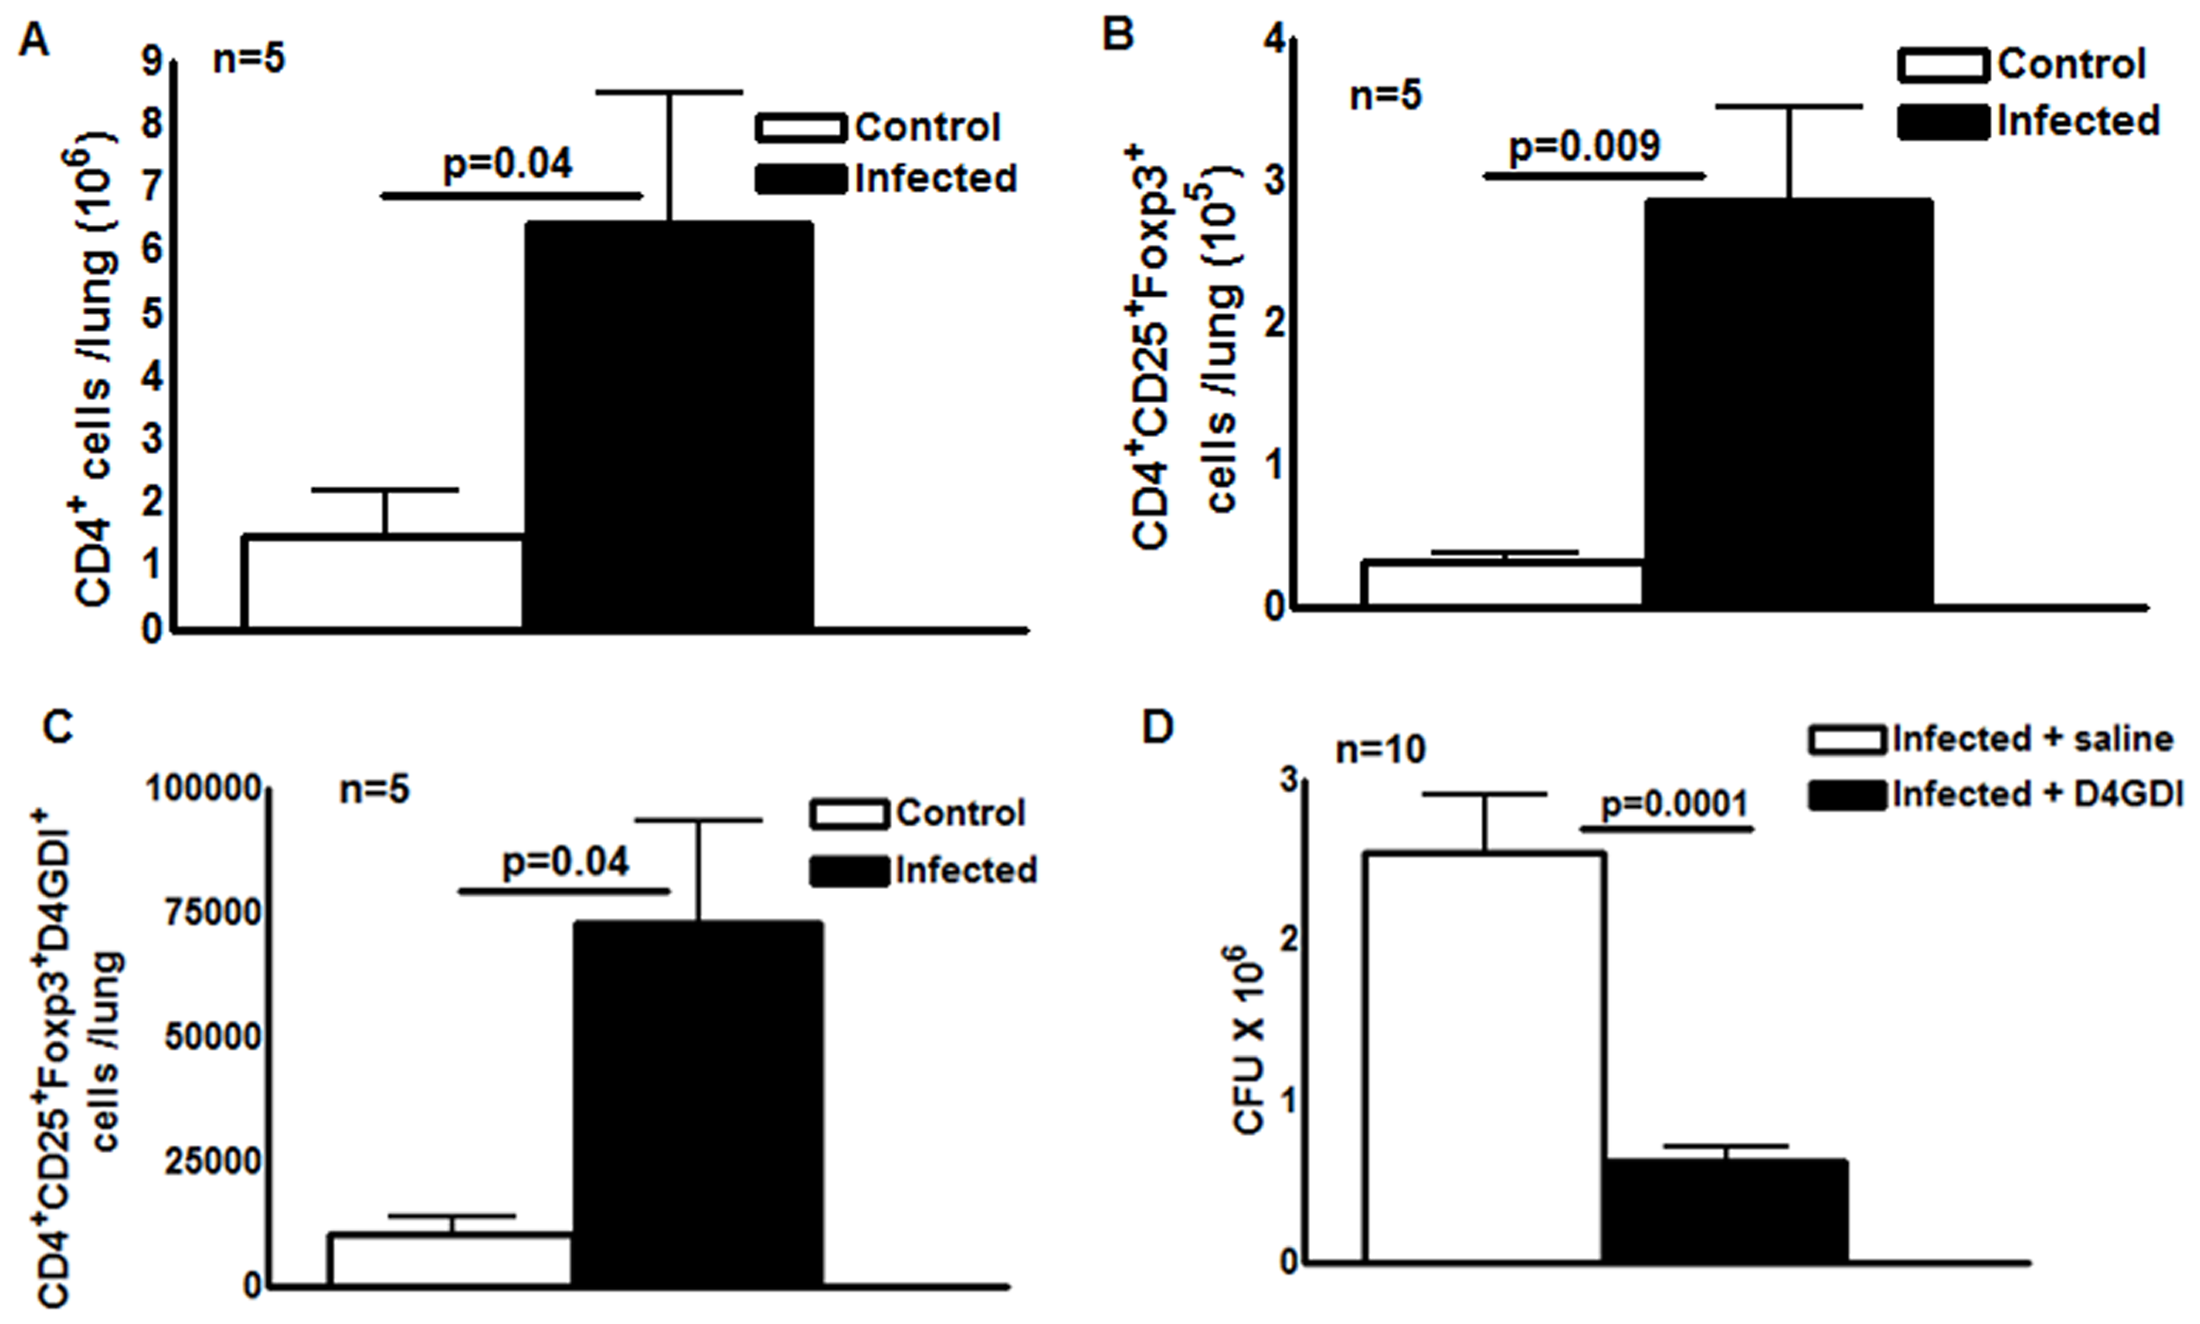 D4GDI inhibits growth of <i>M. tb</i> in mice.